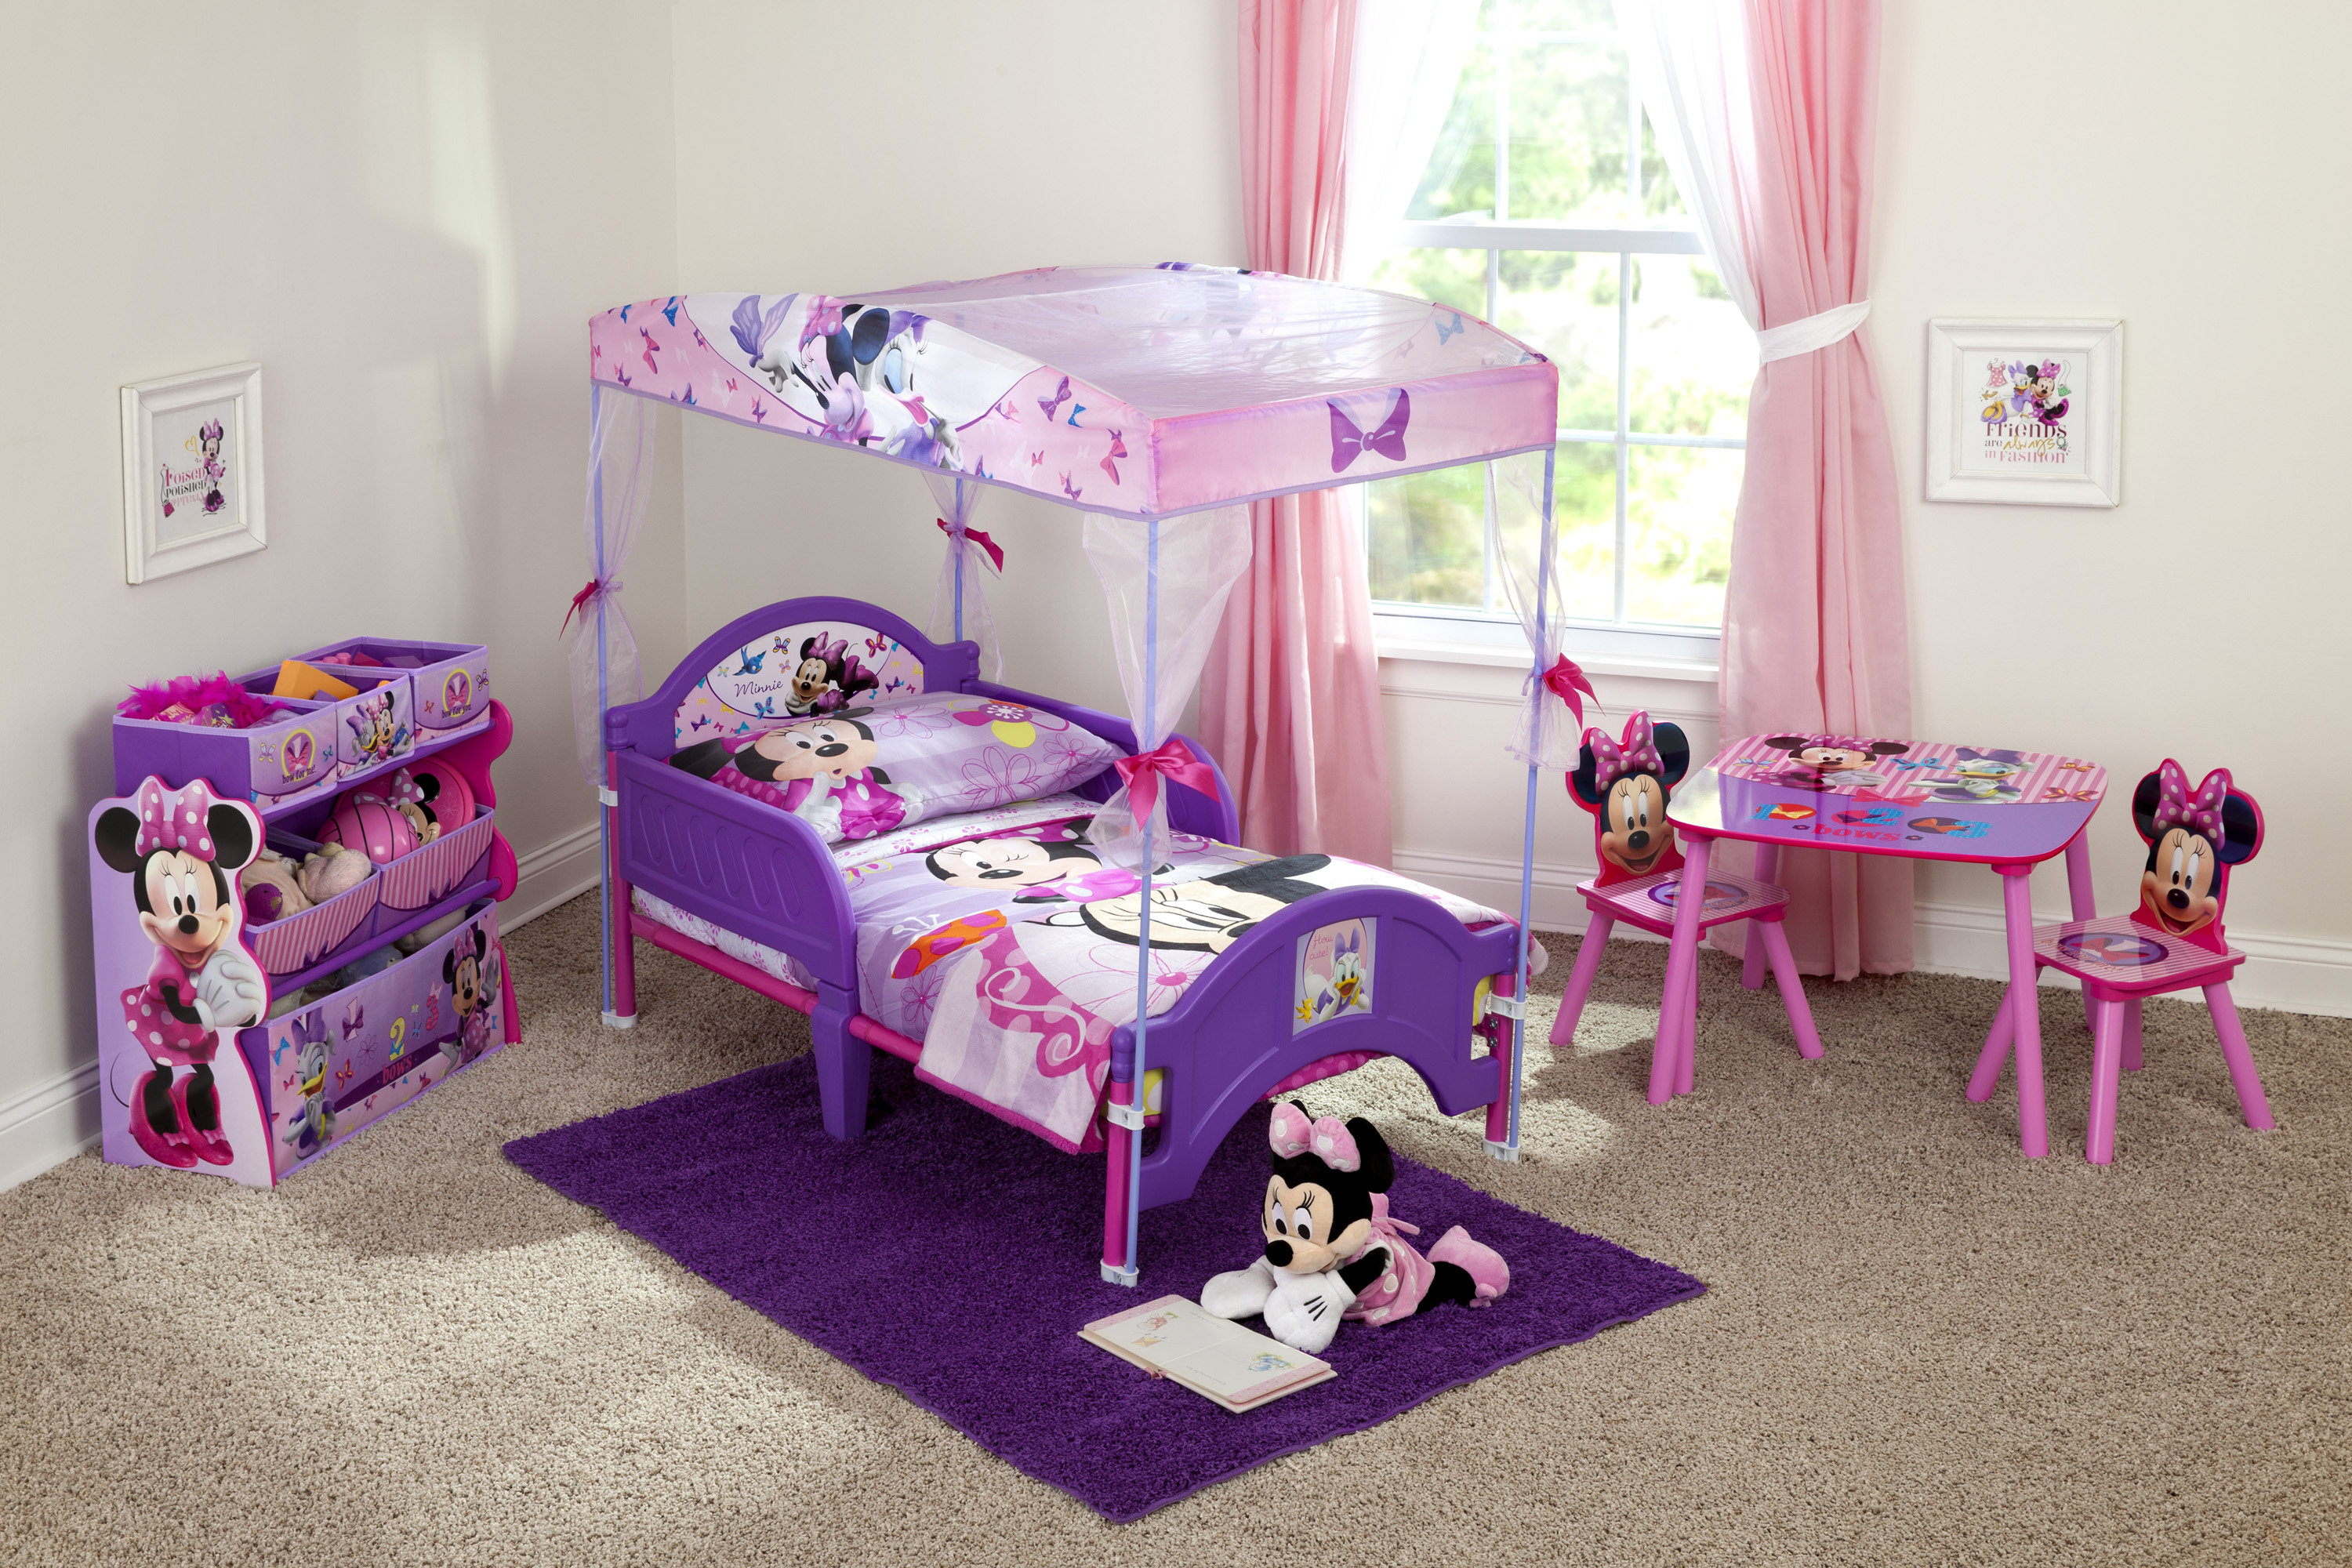 Minnie Mouse Bow-tique Toddler Bed with Canopy Image 2 of 4  sc 1 st  Walmart.com & Minnie Mouse Bow-tique Toddler Bed with Canopy - Walmart.com